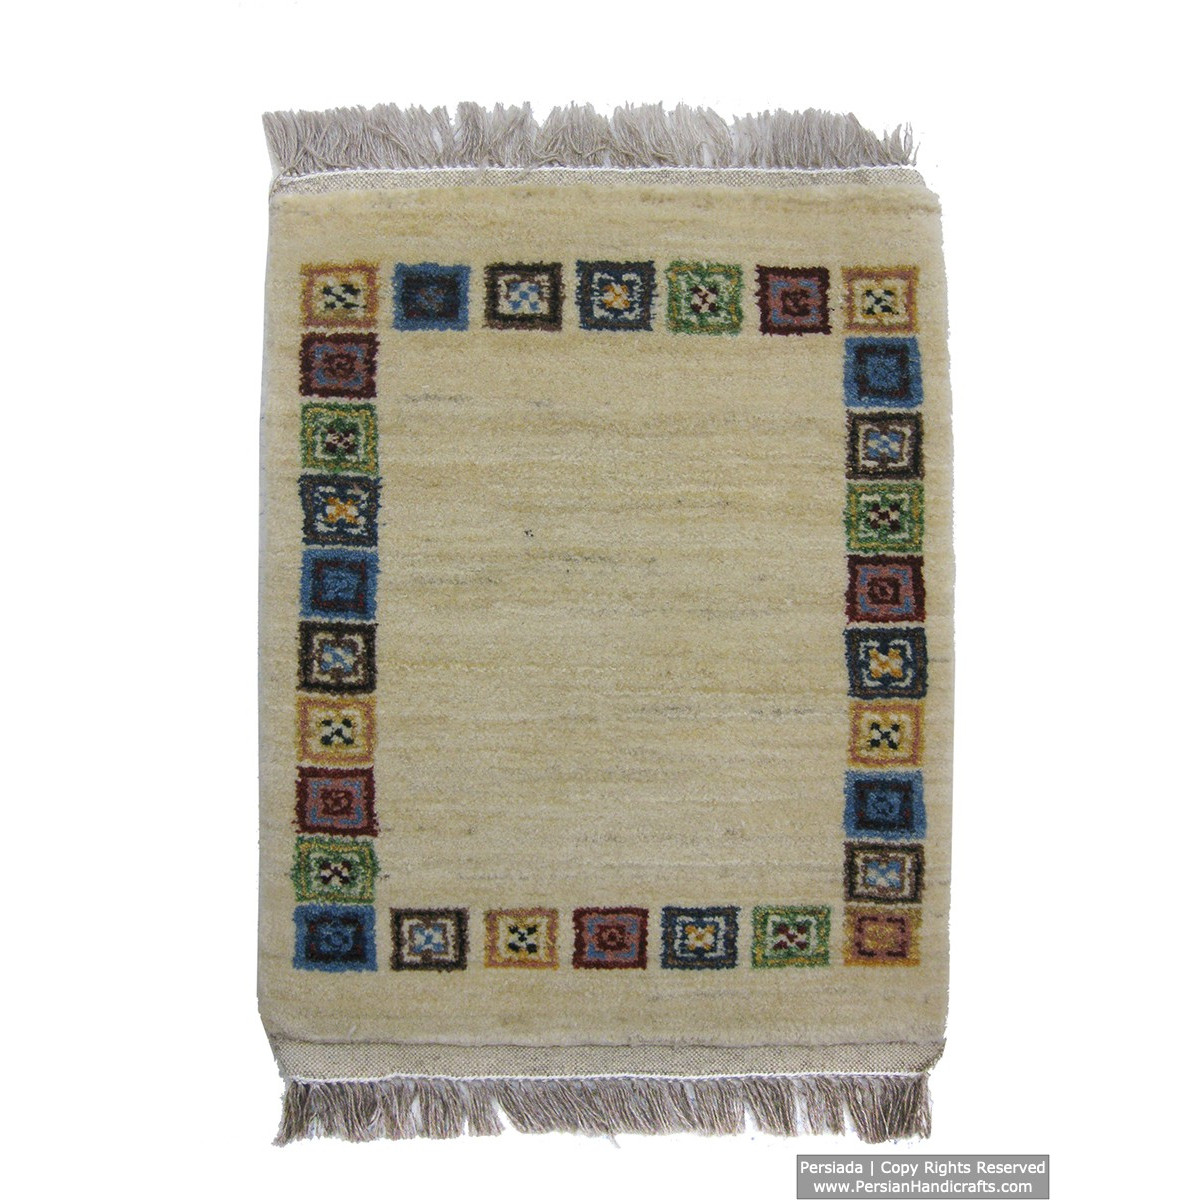 Gabbeh Wool Rug from Persian Ghashghai Nomads - RG5011-Persian Handicrafts